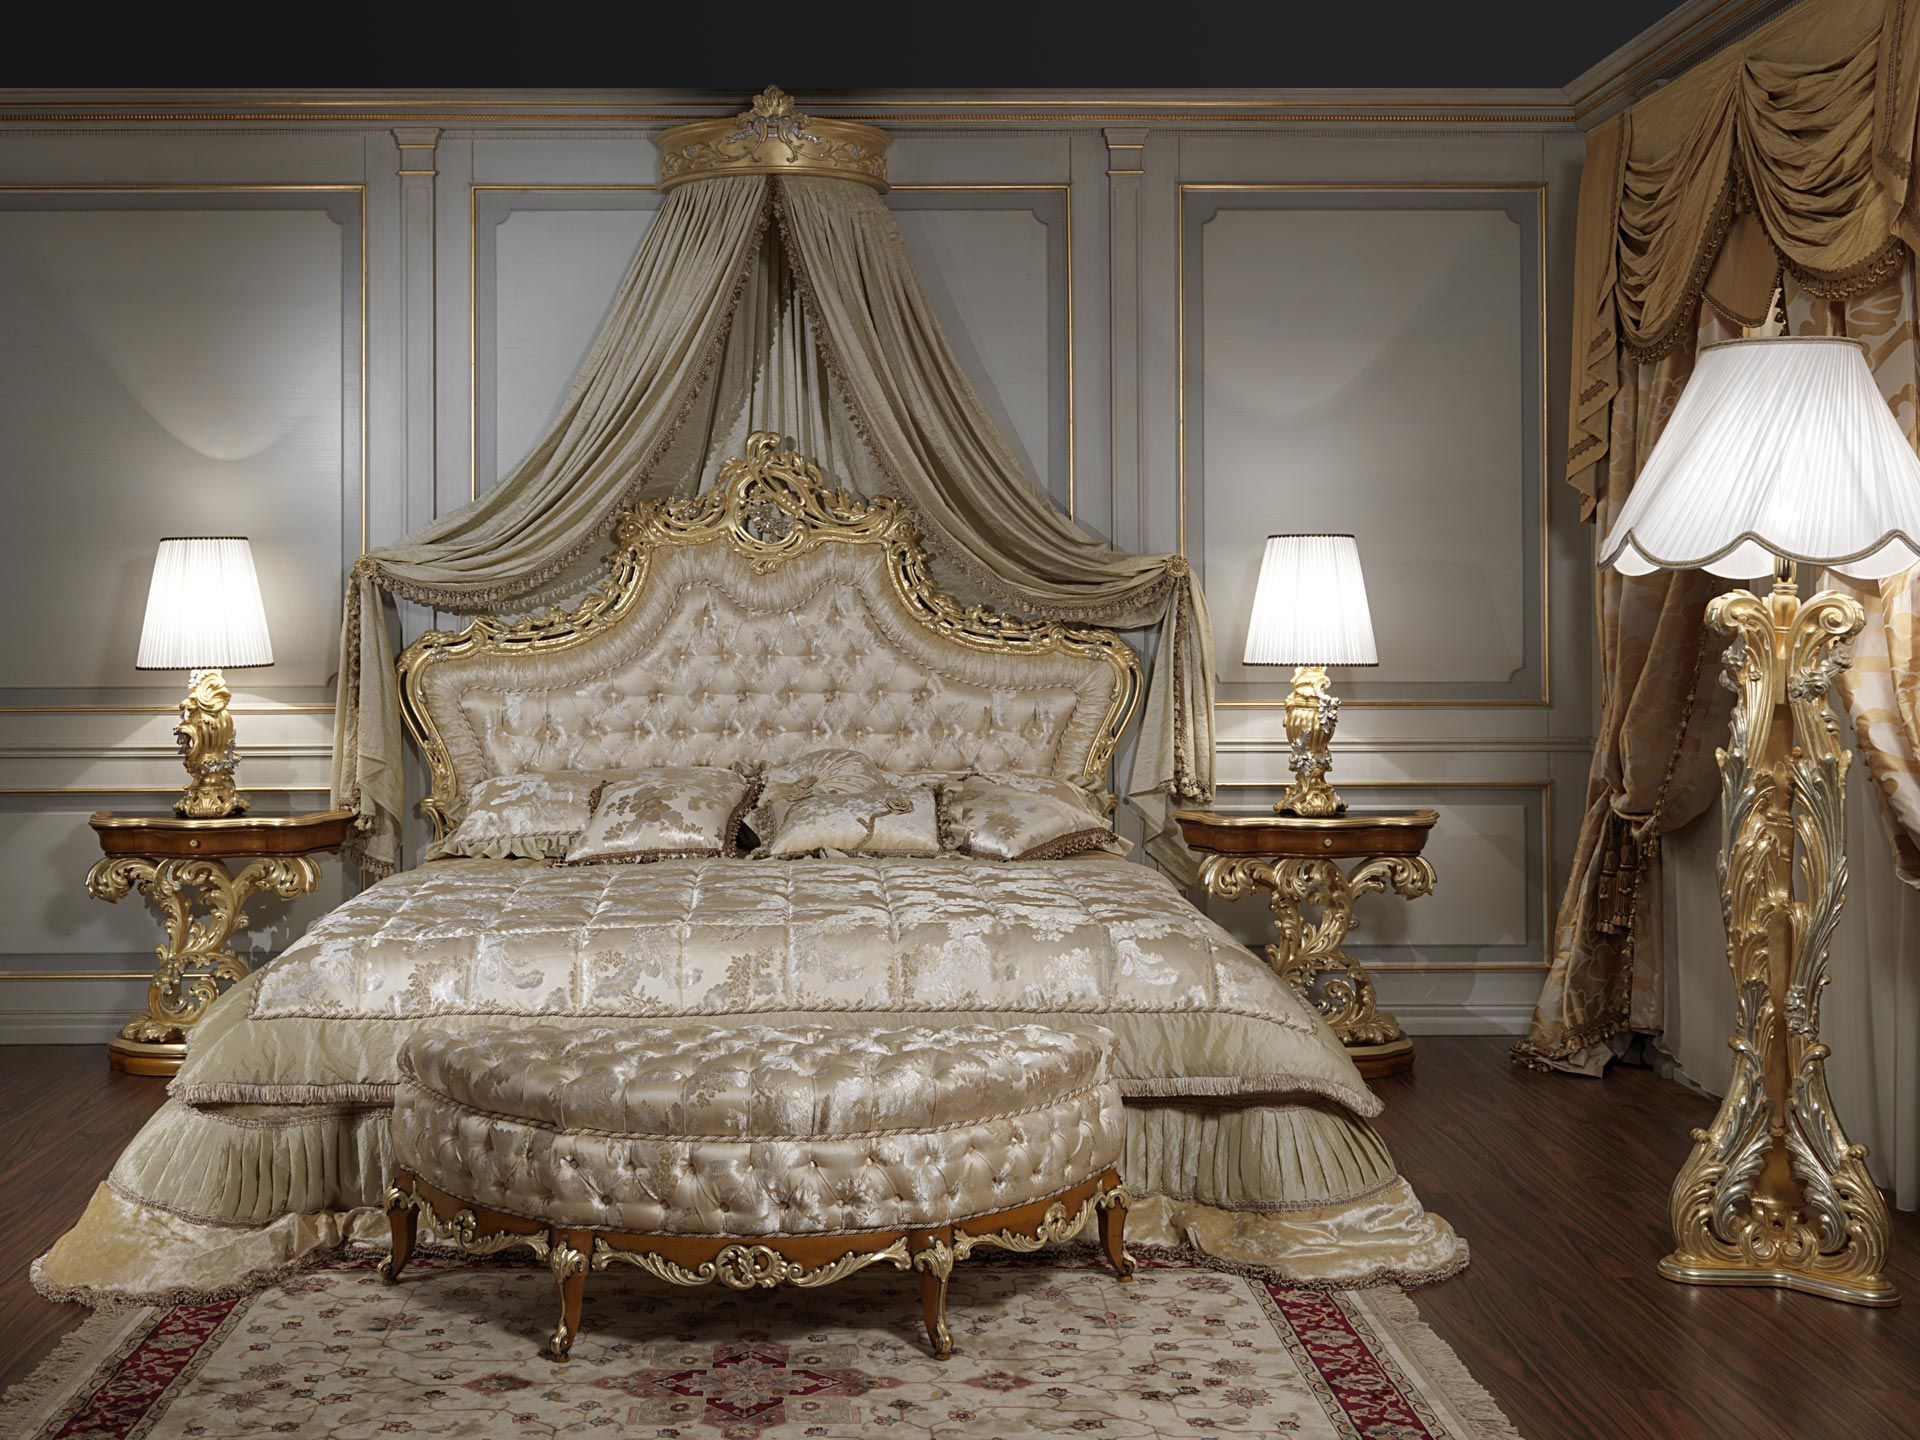 baroque bed for the roman baroque style of the seventeenth century